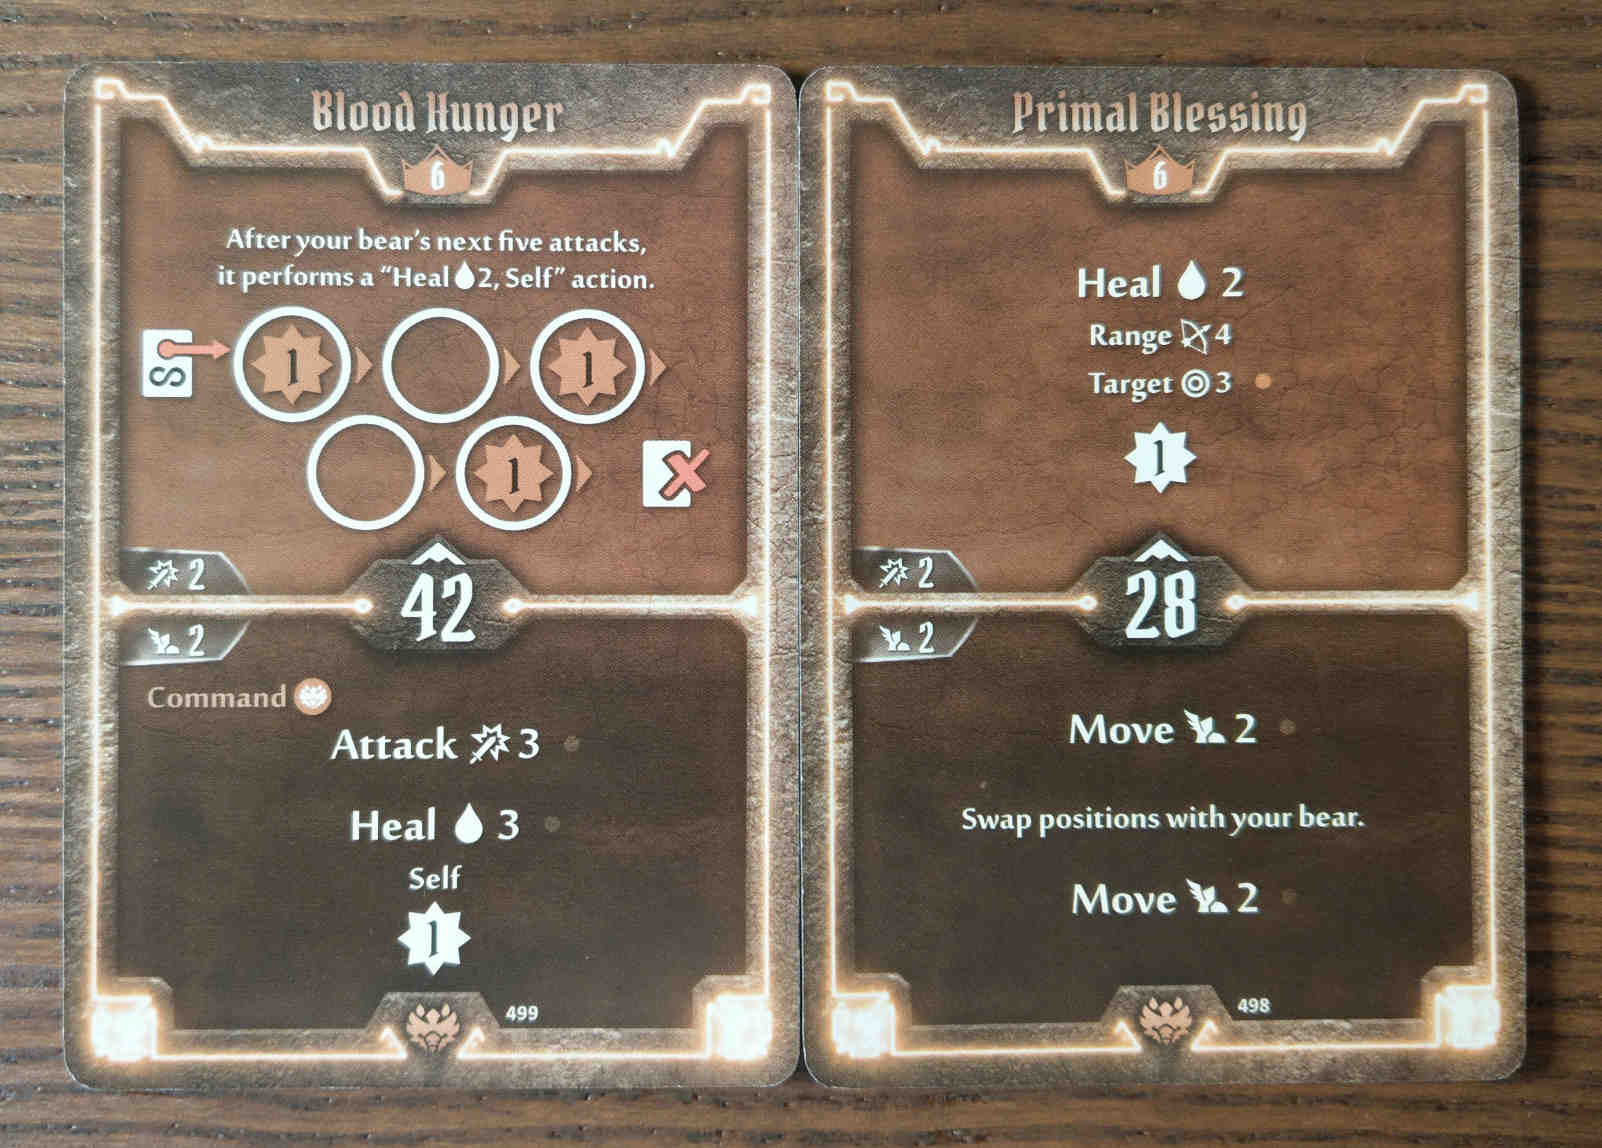 Beast Tyrant level 6 cards - Blood Hunger and Primal Blessing